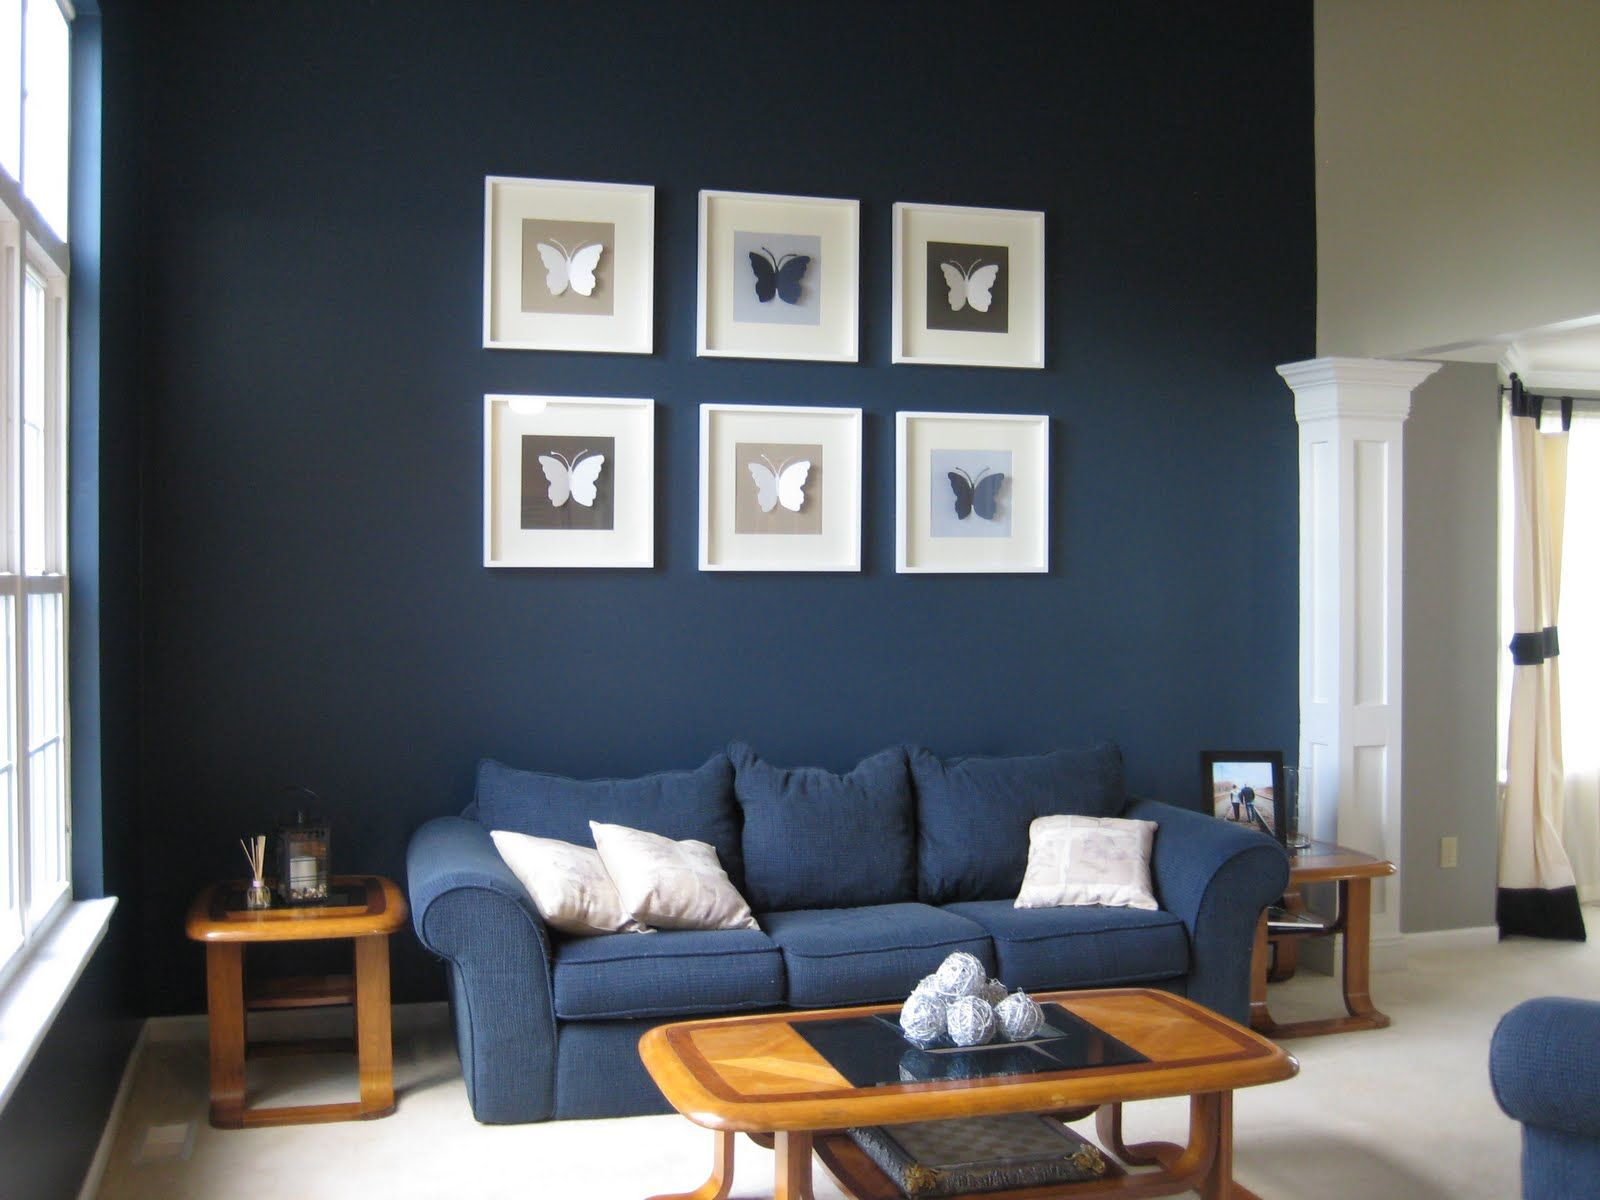 Dark Blue Gray Living Room pretty white picture frame with wooden material on dark blue